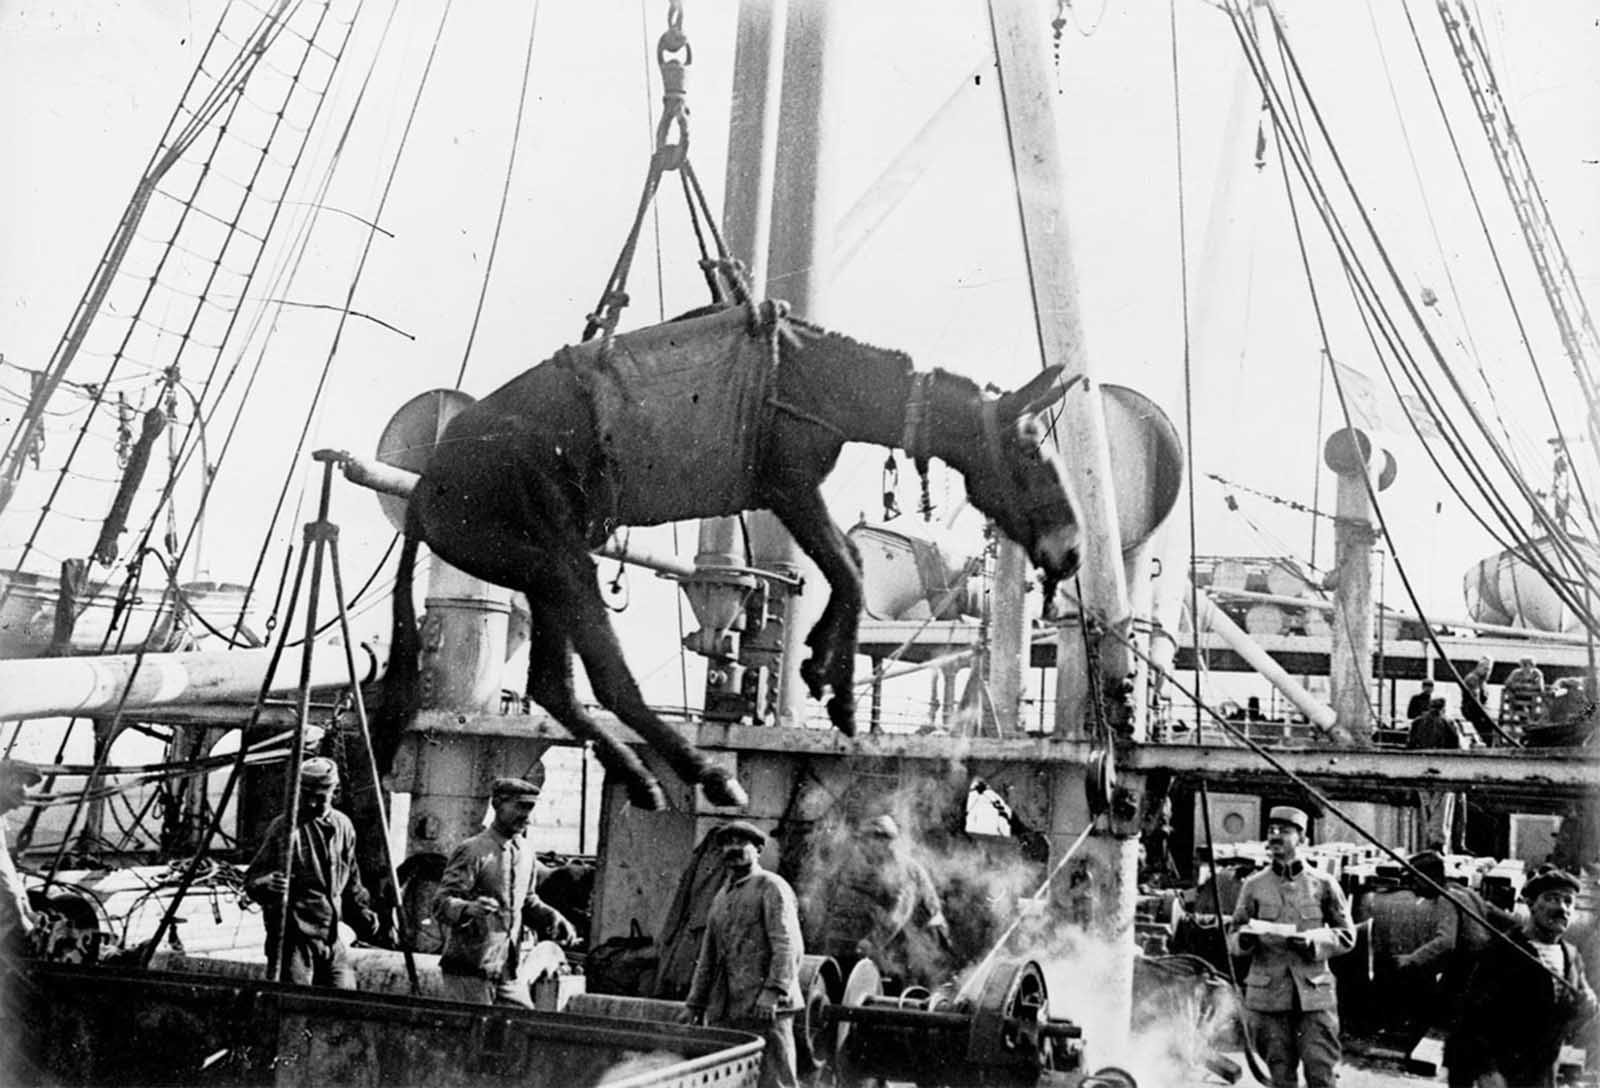 Unloading a mule in Alexandria, Egypt, in 1915. The escalating warfare drove Britain and France to import horses and mules from overseas by the hundreds of thousands. Vulnerable transport ships were frequent targets of the German Navy, sending thousands of animals to the bottom of the sea.